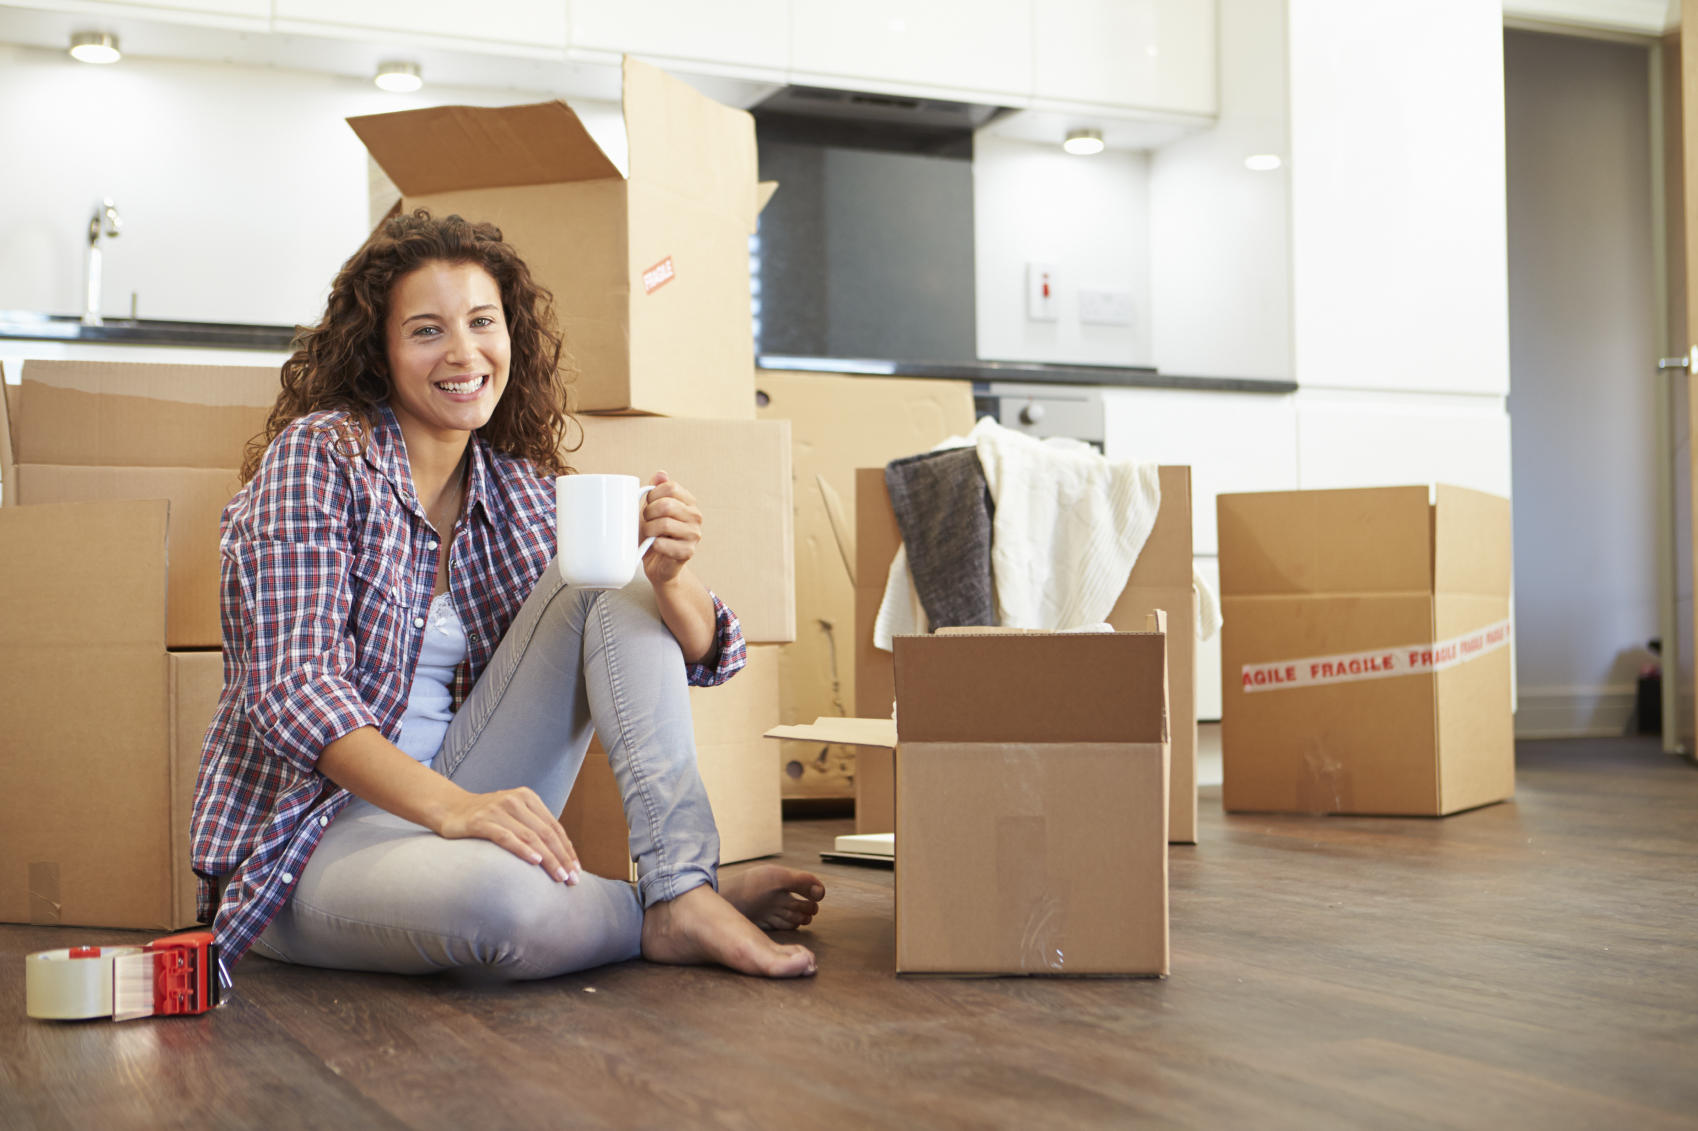 best place to buy moving boxes 11 best places to find free moving boxes tlcme tlc 29210